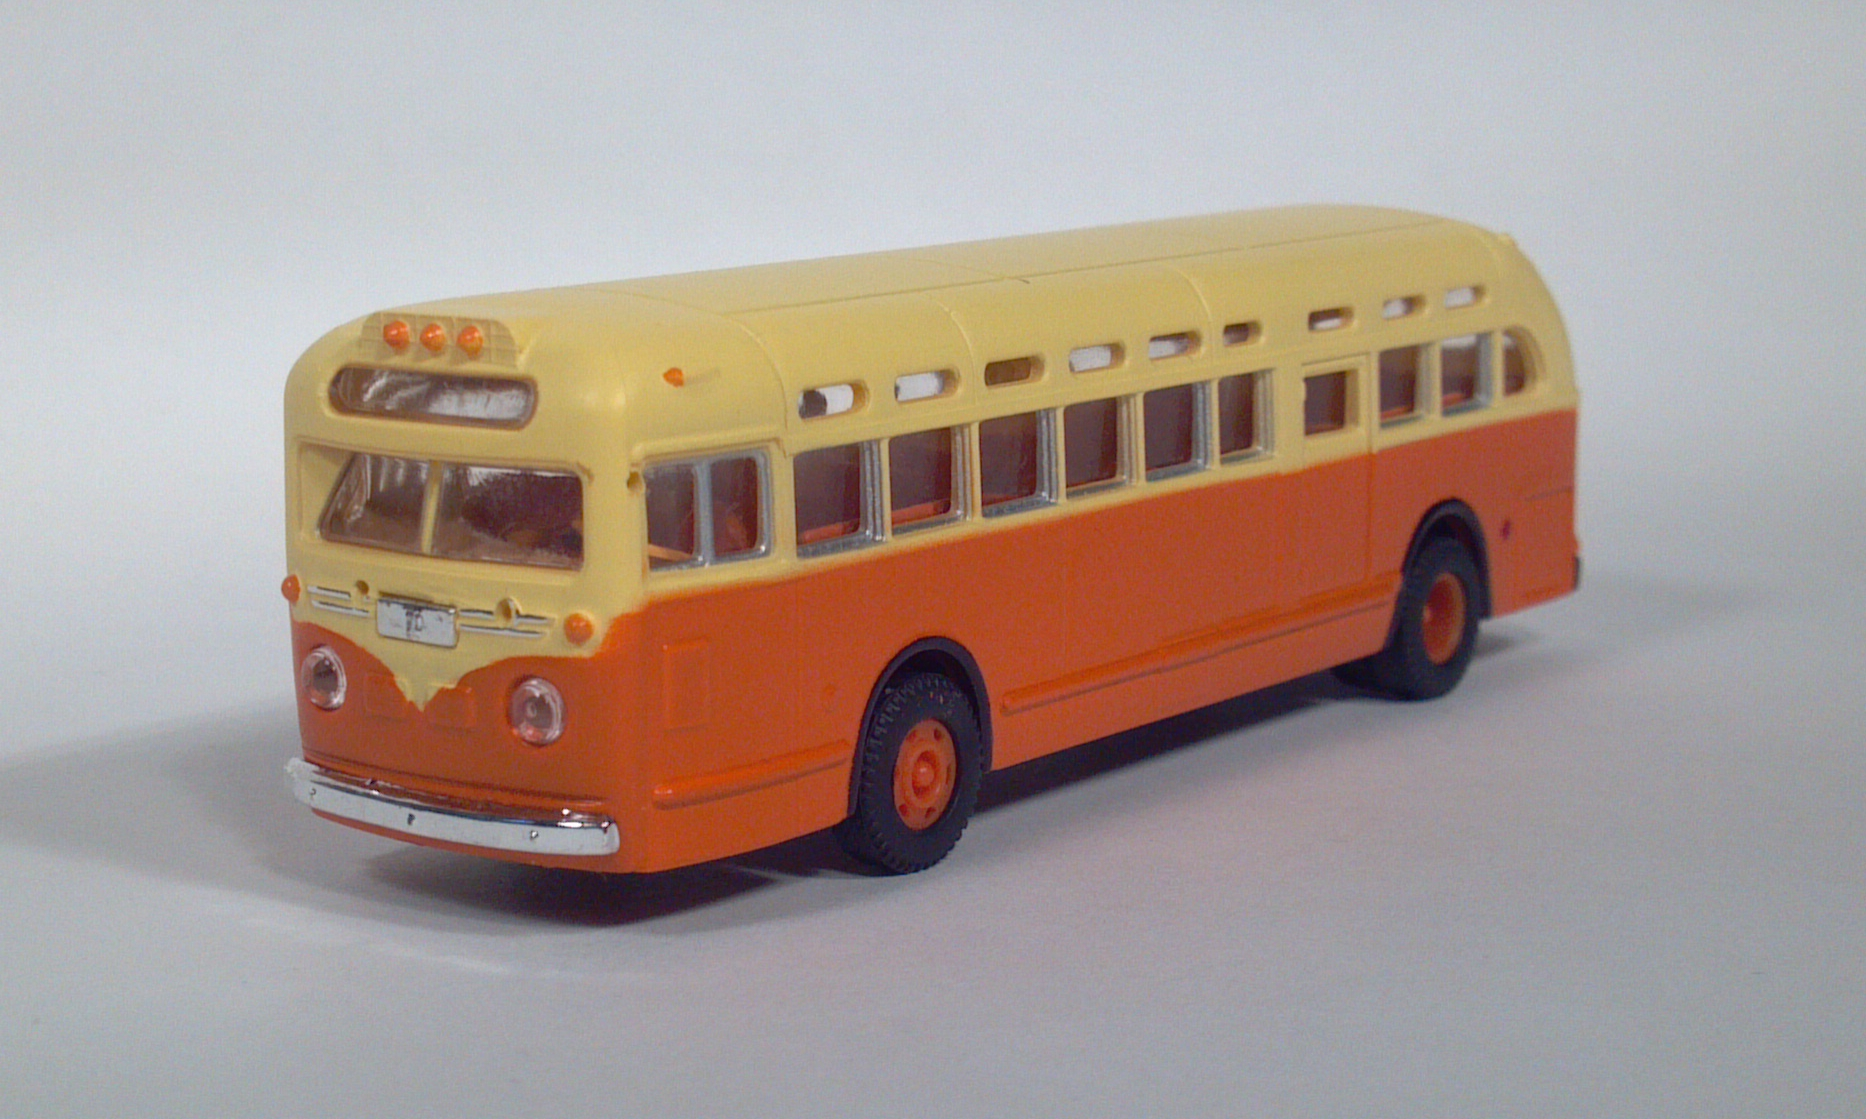 bus ho wiring diagram html with 1950 Gm Bus on Model Railroad Wiring additionally Shinohara Dual Gauge Wiring Diagram also Dcc Wiring Harness likewise Double Track Wiring Dcc likewise Eldon Racetrack Timer Wiring Diagram.